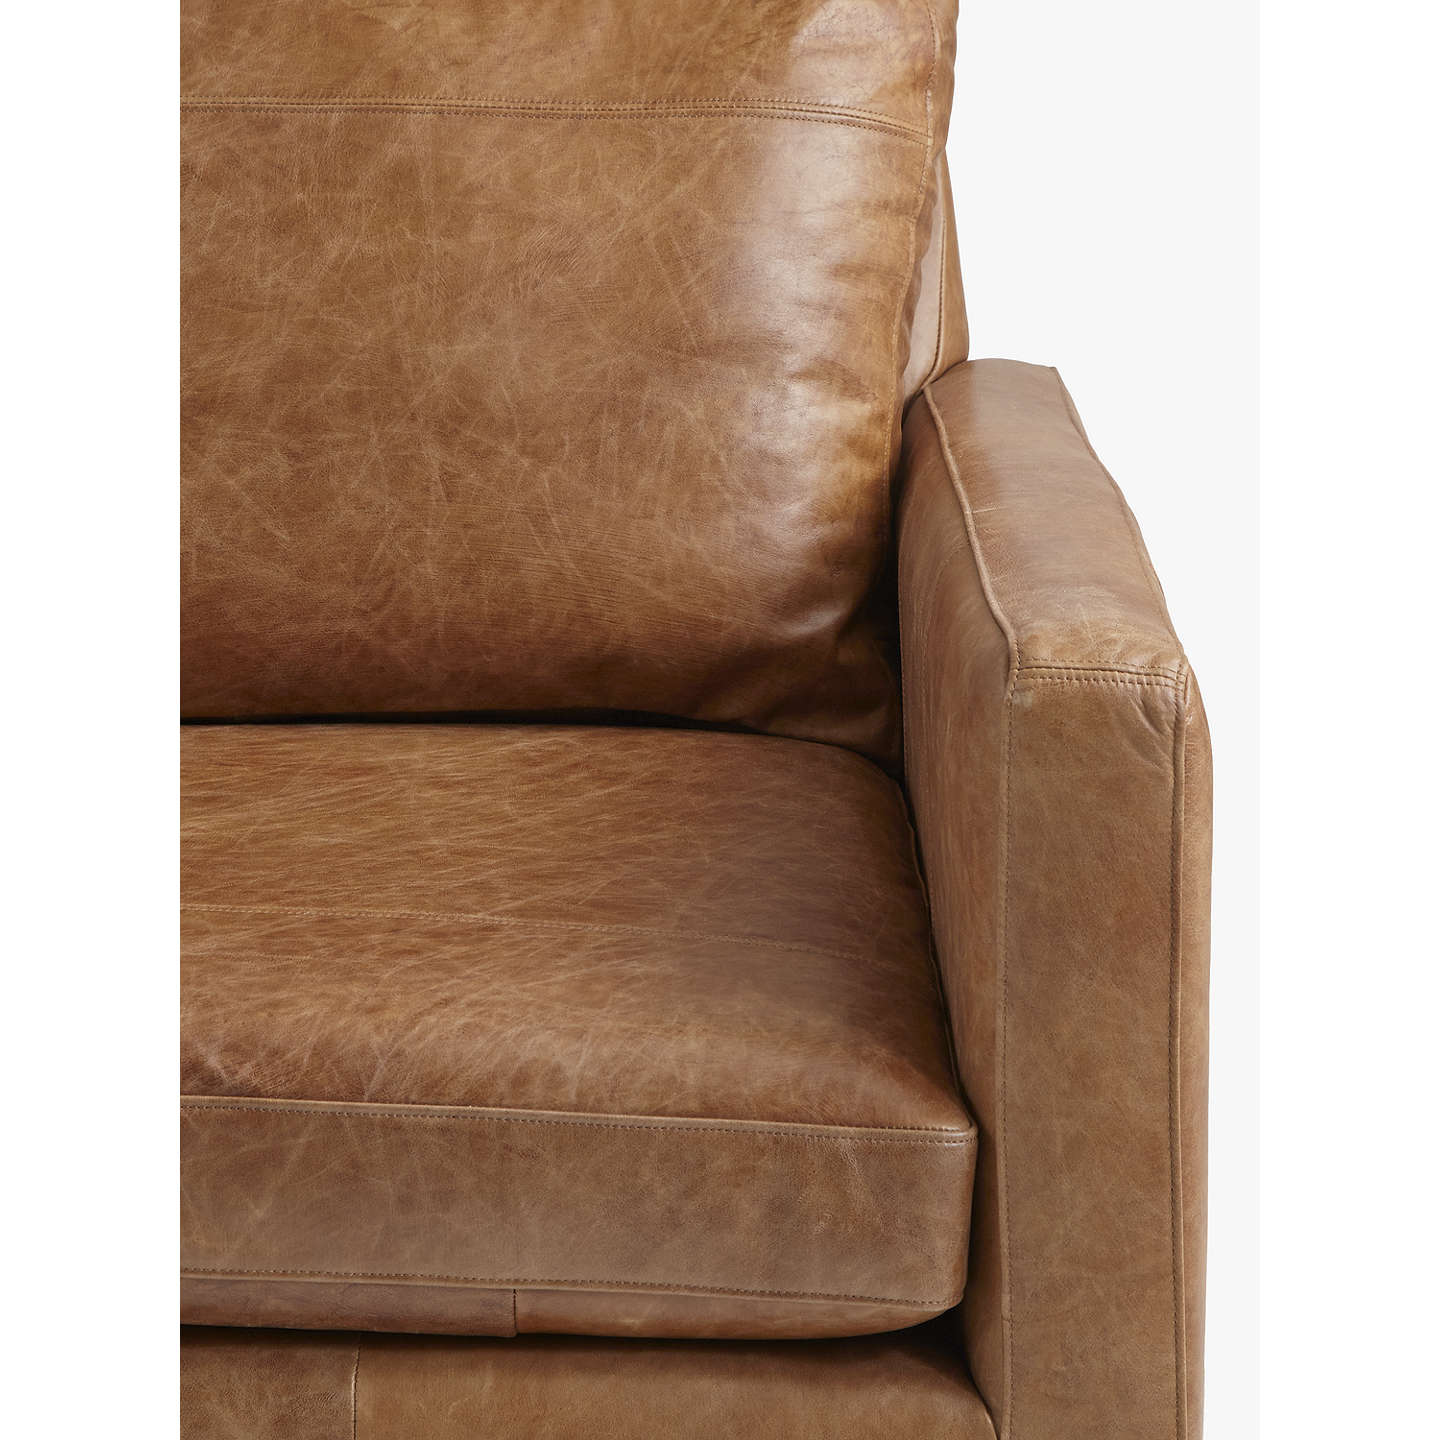 Beau ... BuyJohn Lewis Bailey Grand 4 Seater Semi Aniline Leather Sofa, Luster  Cappuccino Online At ...